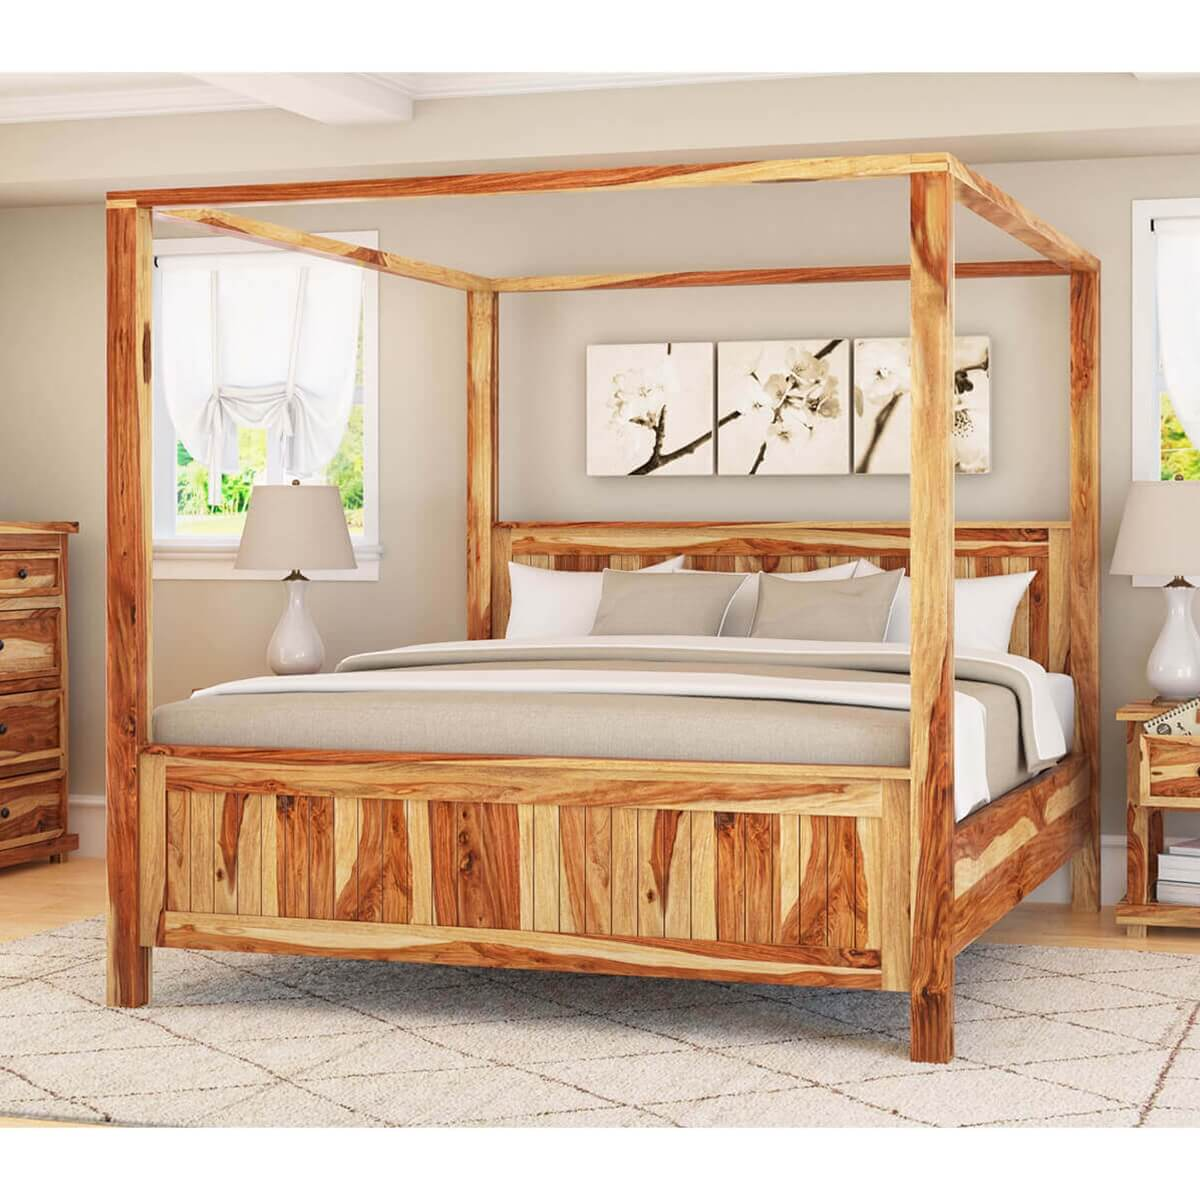 268ebea2d5941 Larvik Rustic Solid Wood Platform Canopy Bed. Hover to zoom